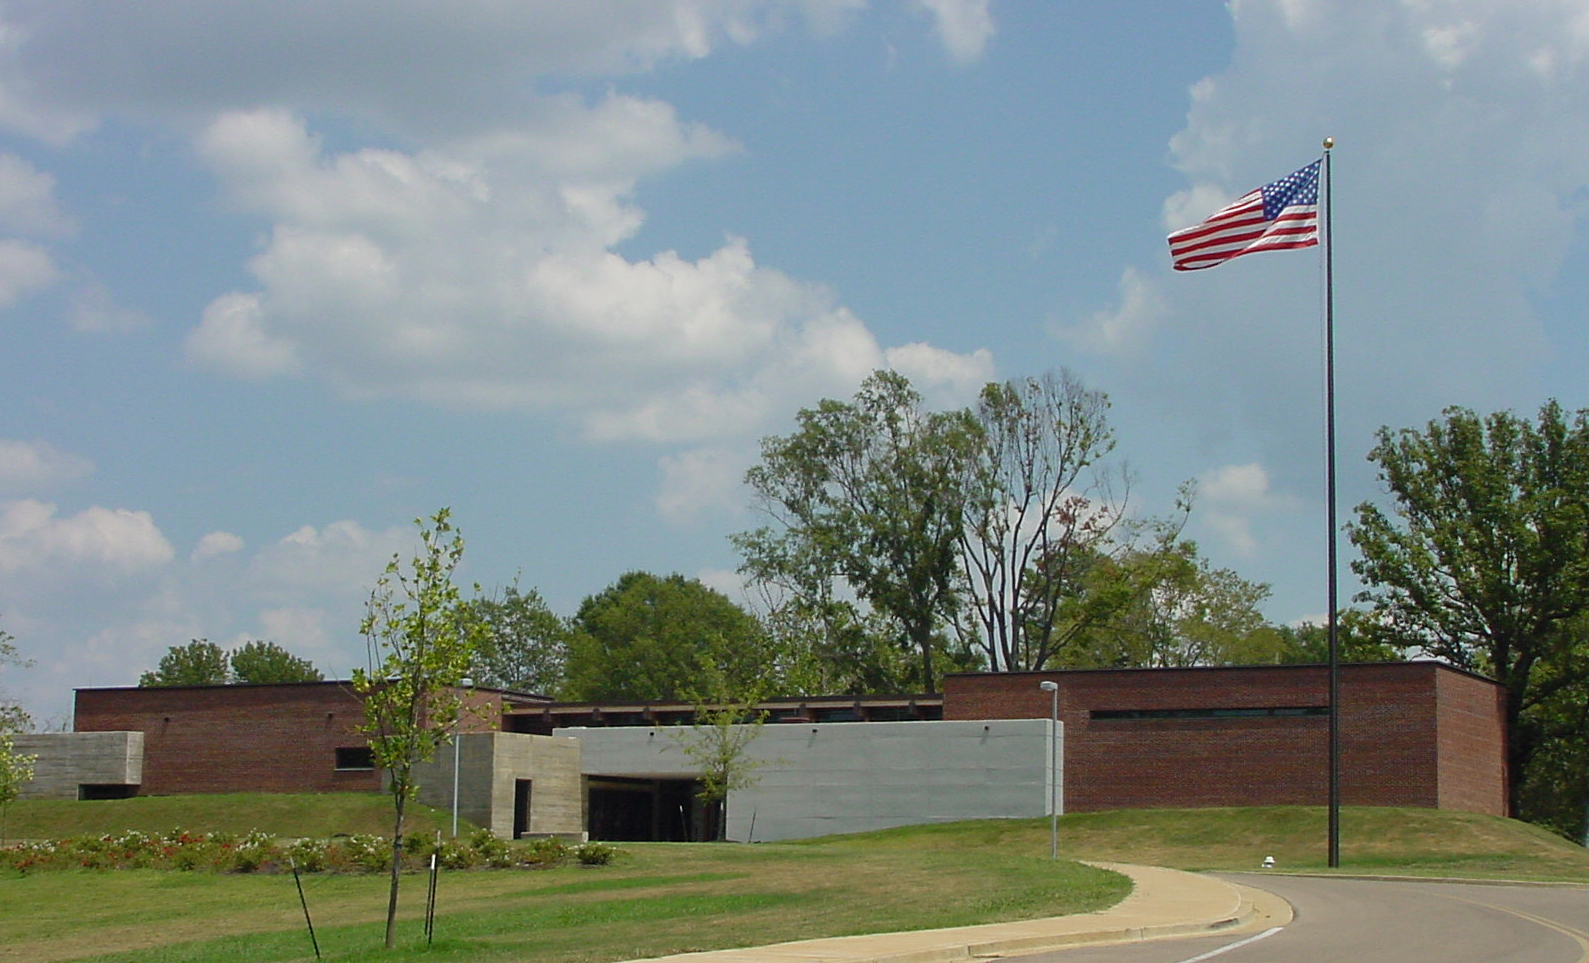 The Corinth Civil War Interpretive Center is part of the Shiloh National Military Park.